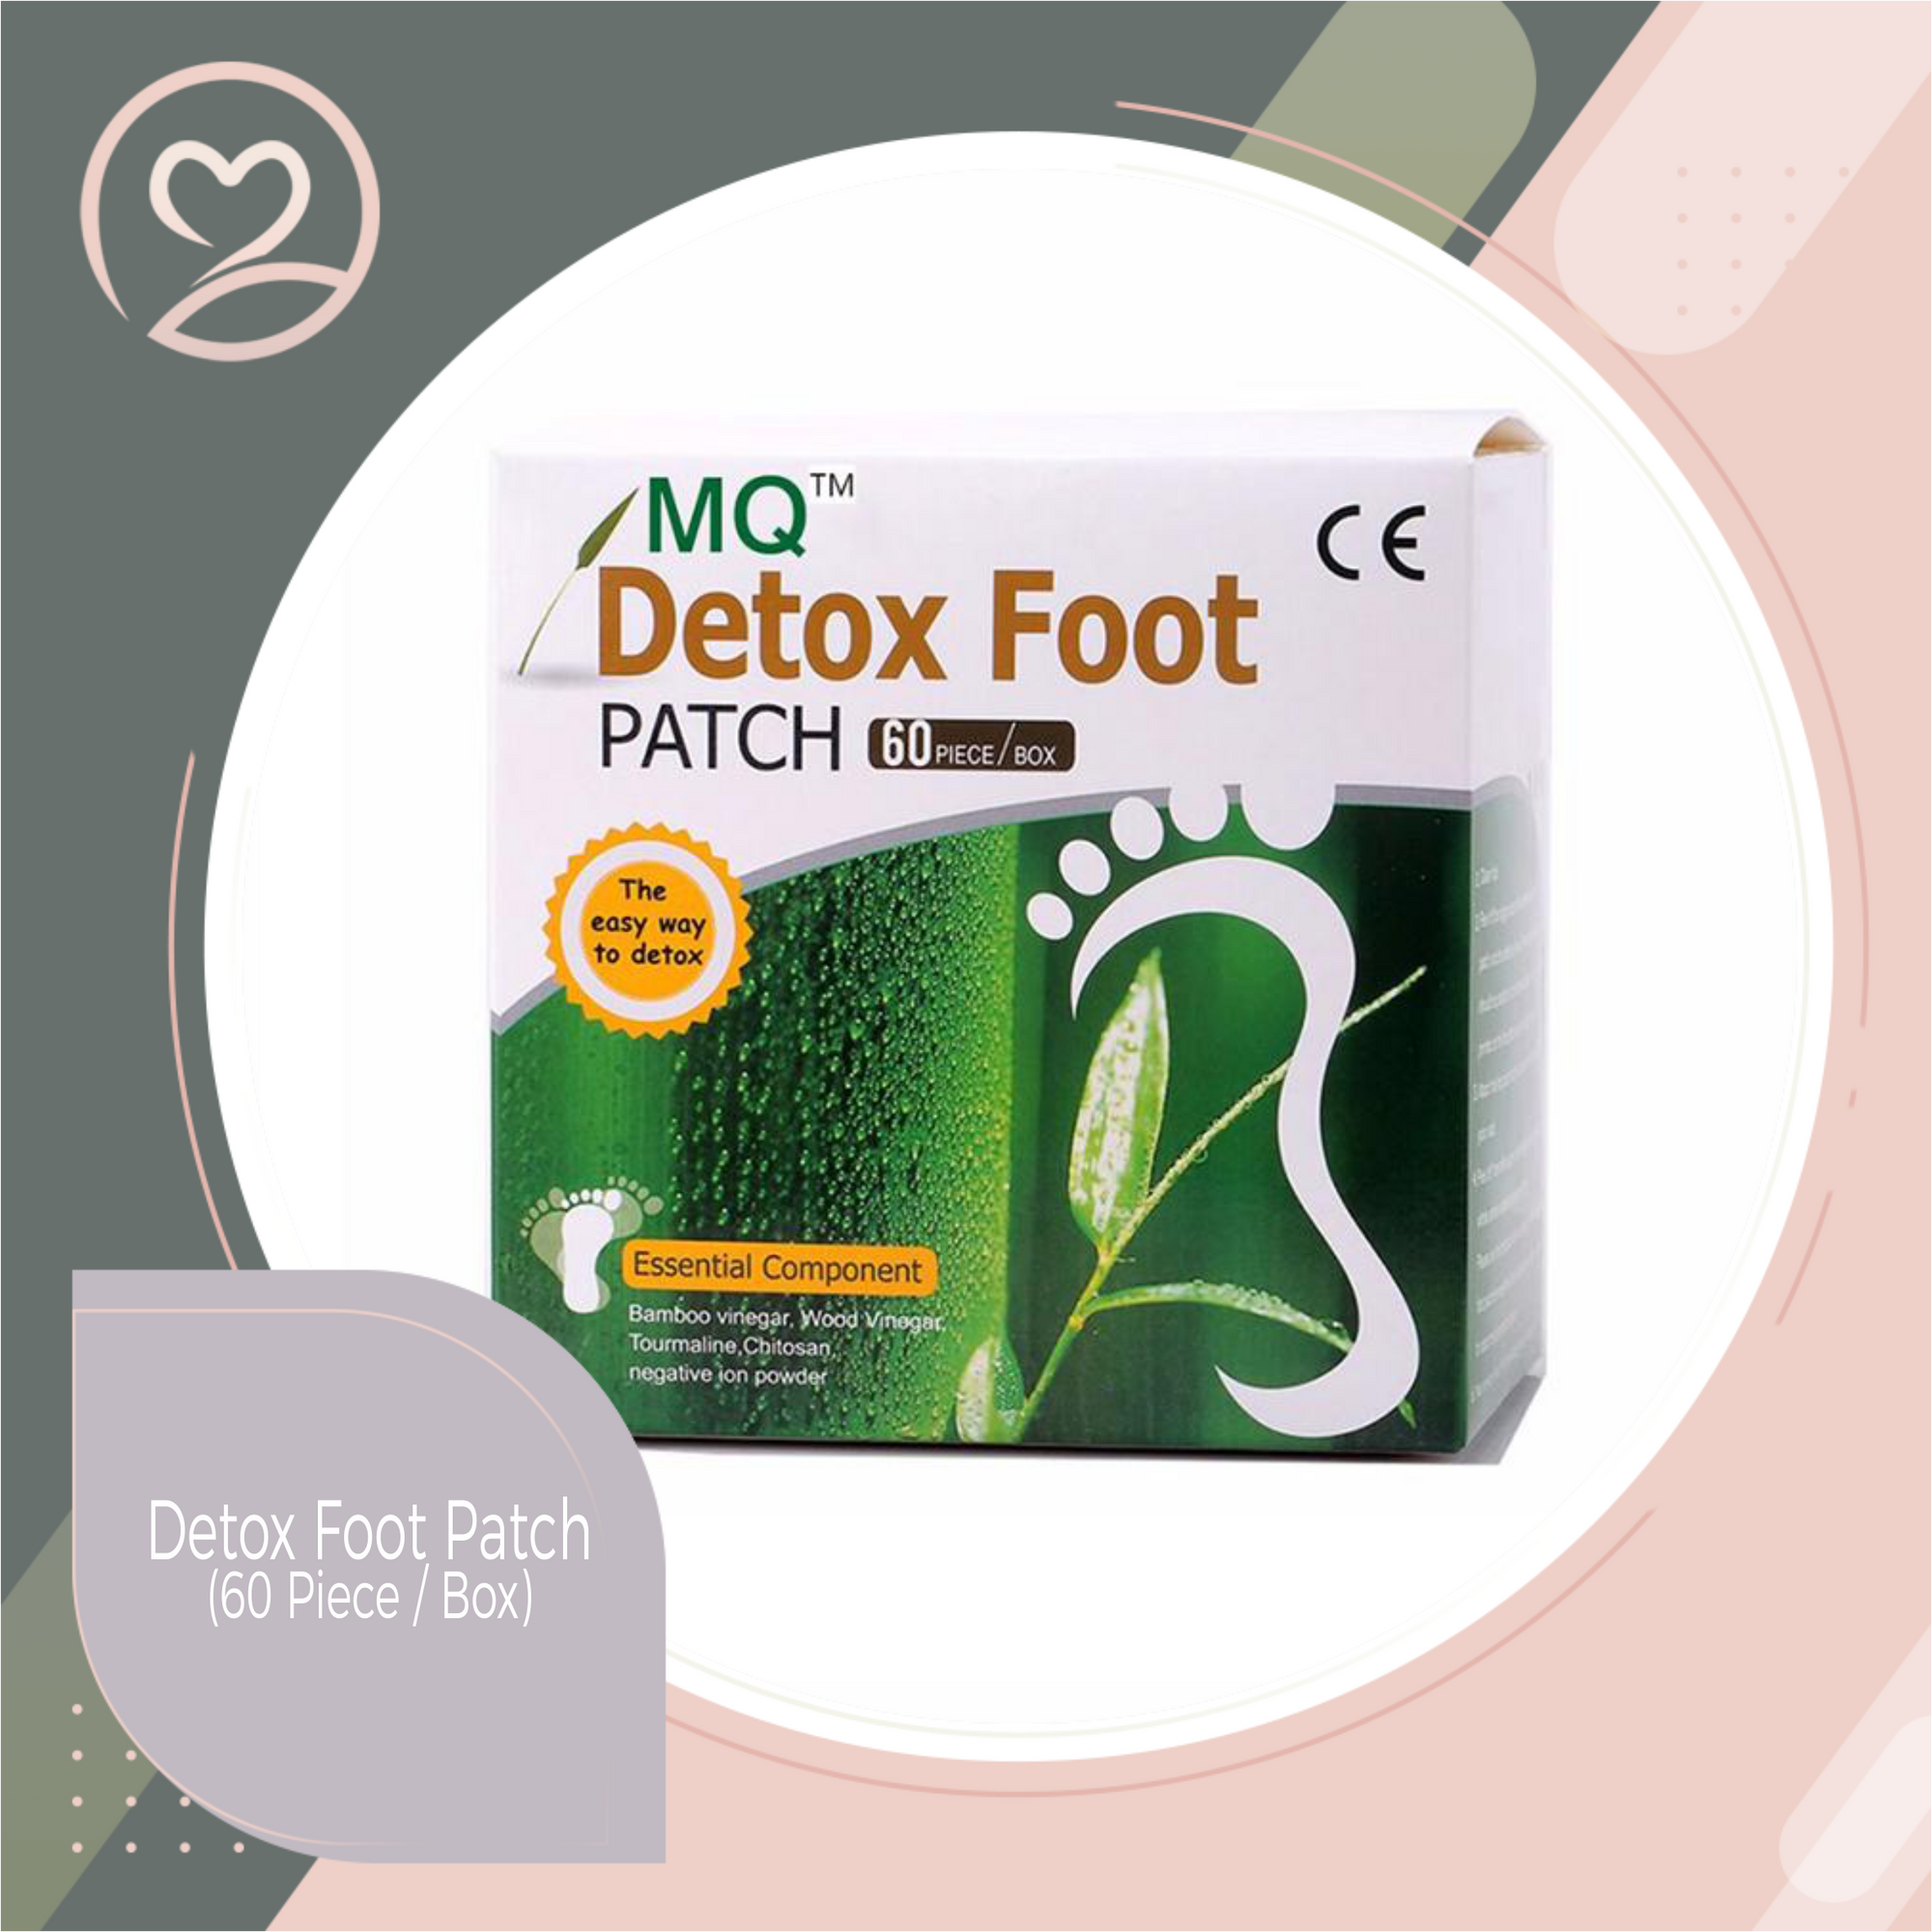 Detox Foot Patch (60 Piece / Box)